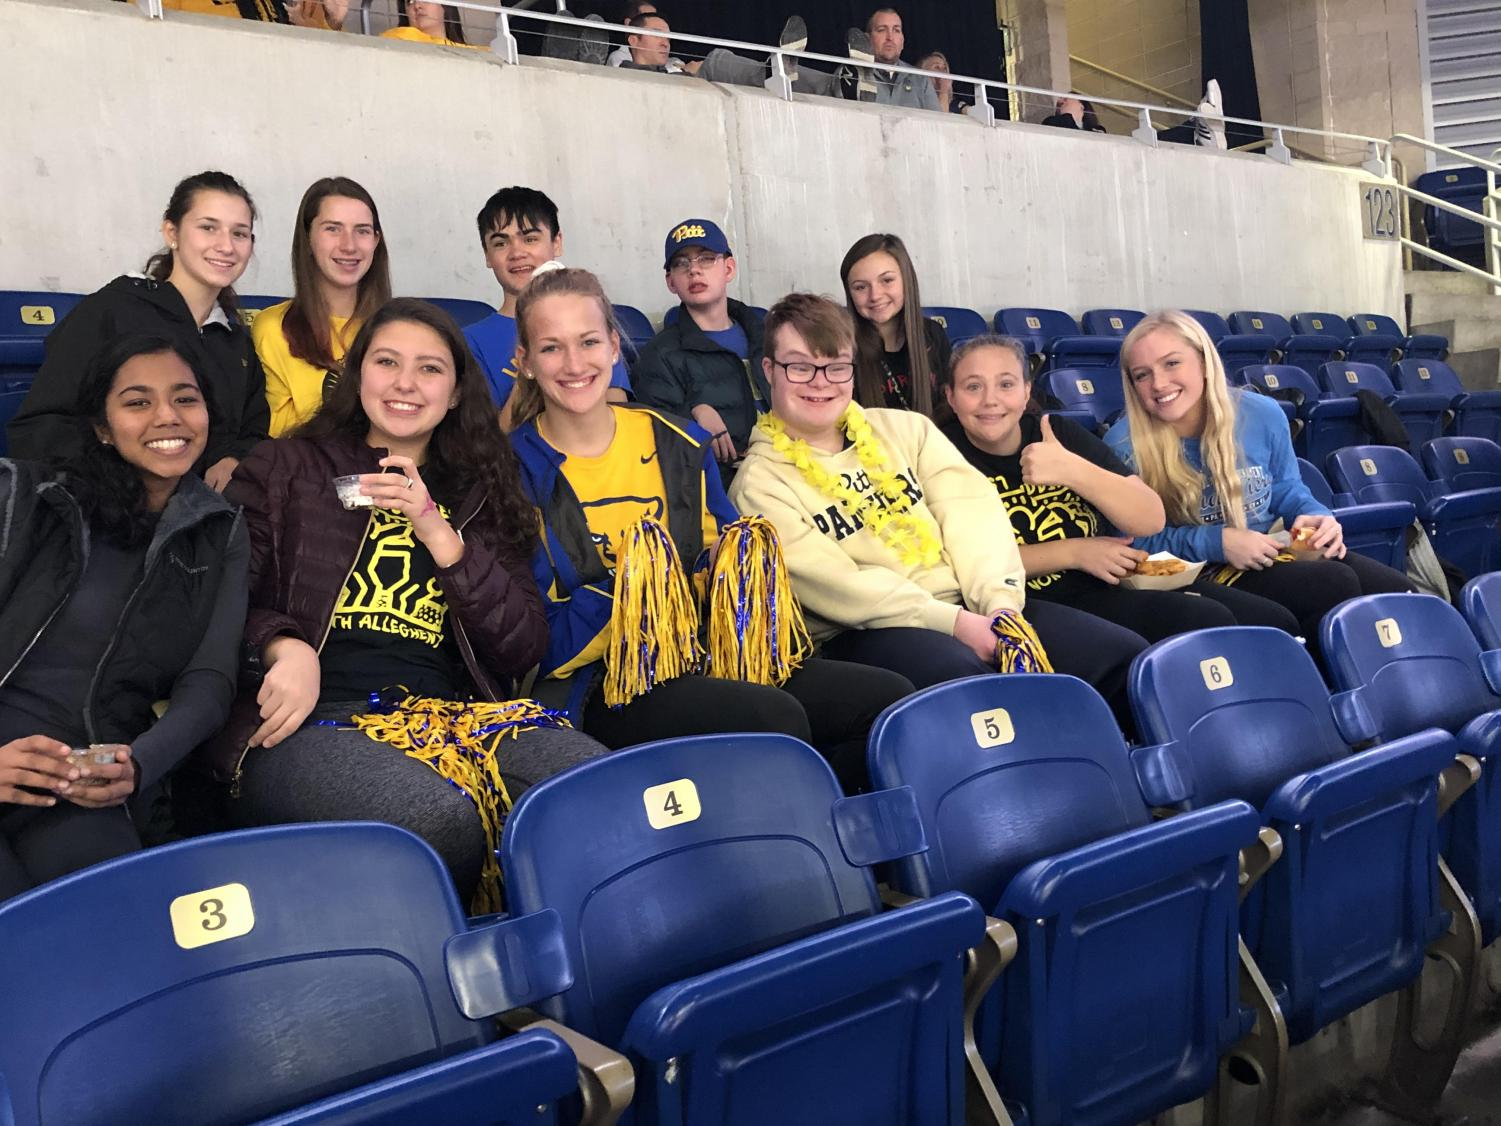 The NASH Best Buddies group attended the Pitt Women's Basketball game in November, and their calendar holds many more adventures this year.